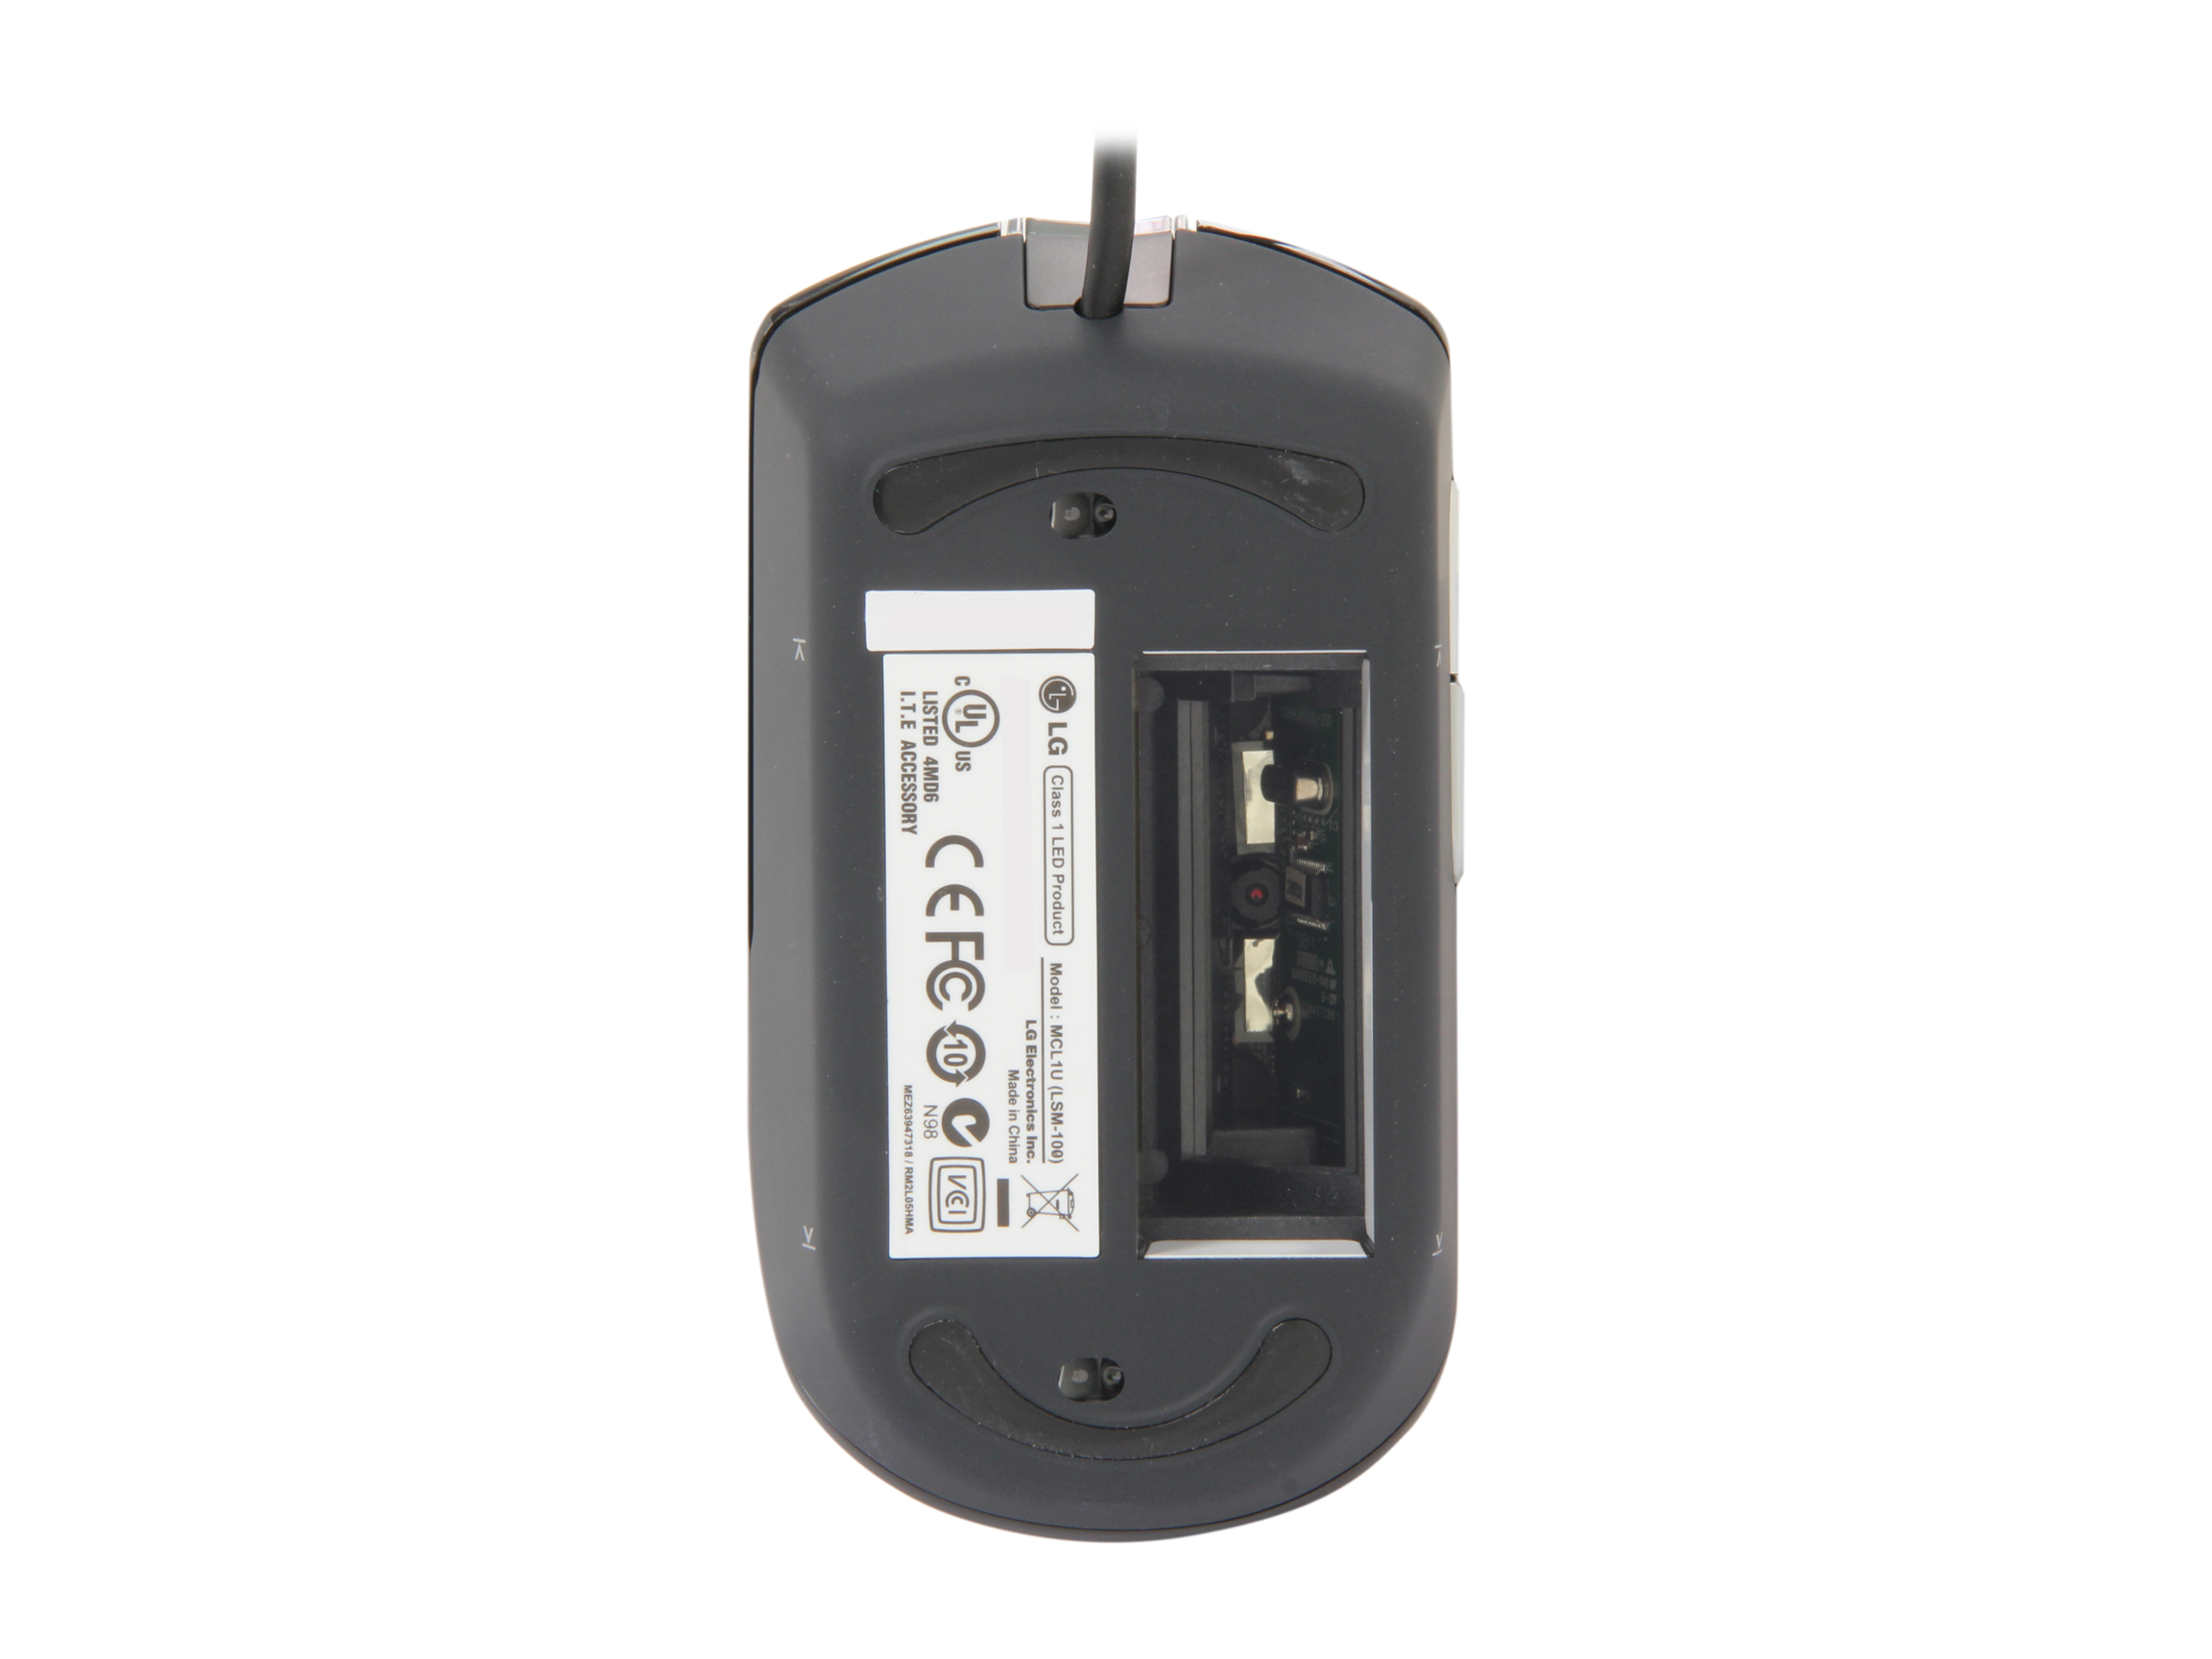 LG LSM-100 (MCL1ULOGE.CH3MAC) 1200dpi Laser 5 Button  Smart Mouse Scanner